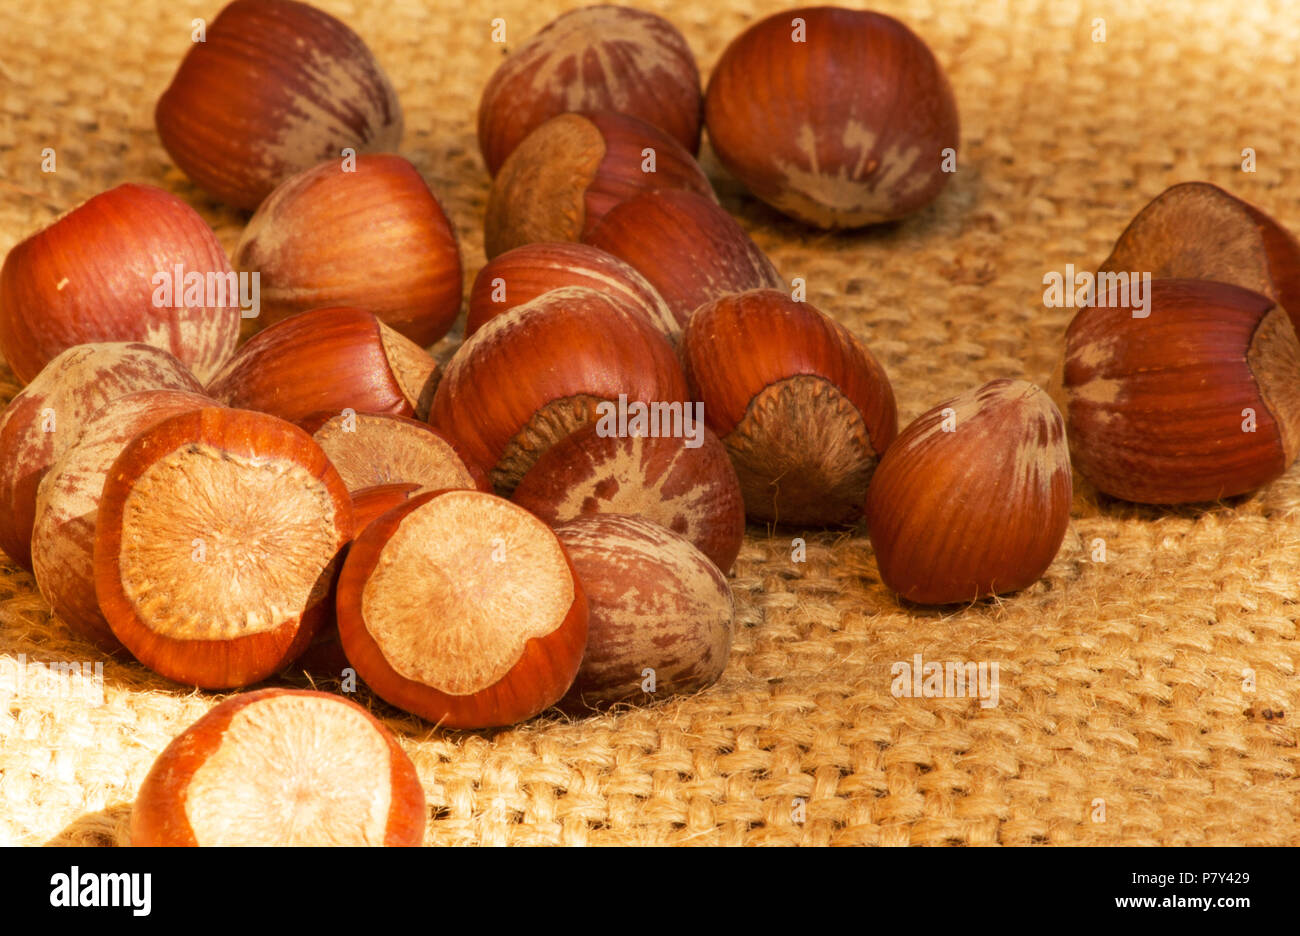 Hazelnuts on burlap - Stock Image